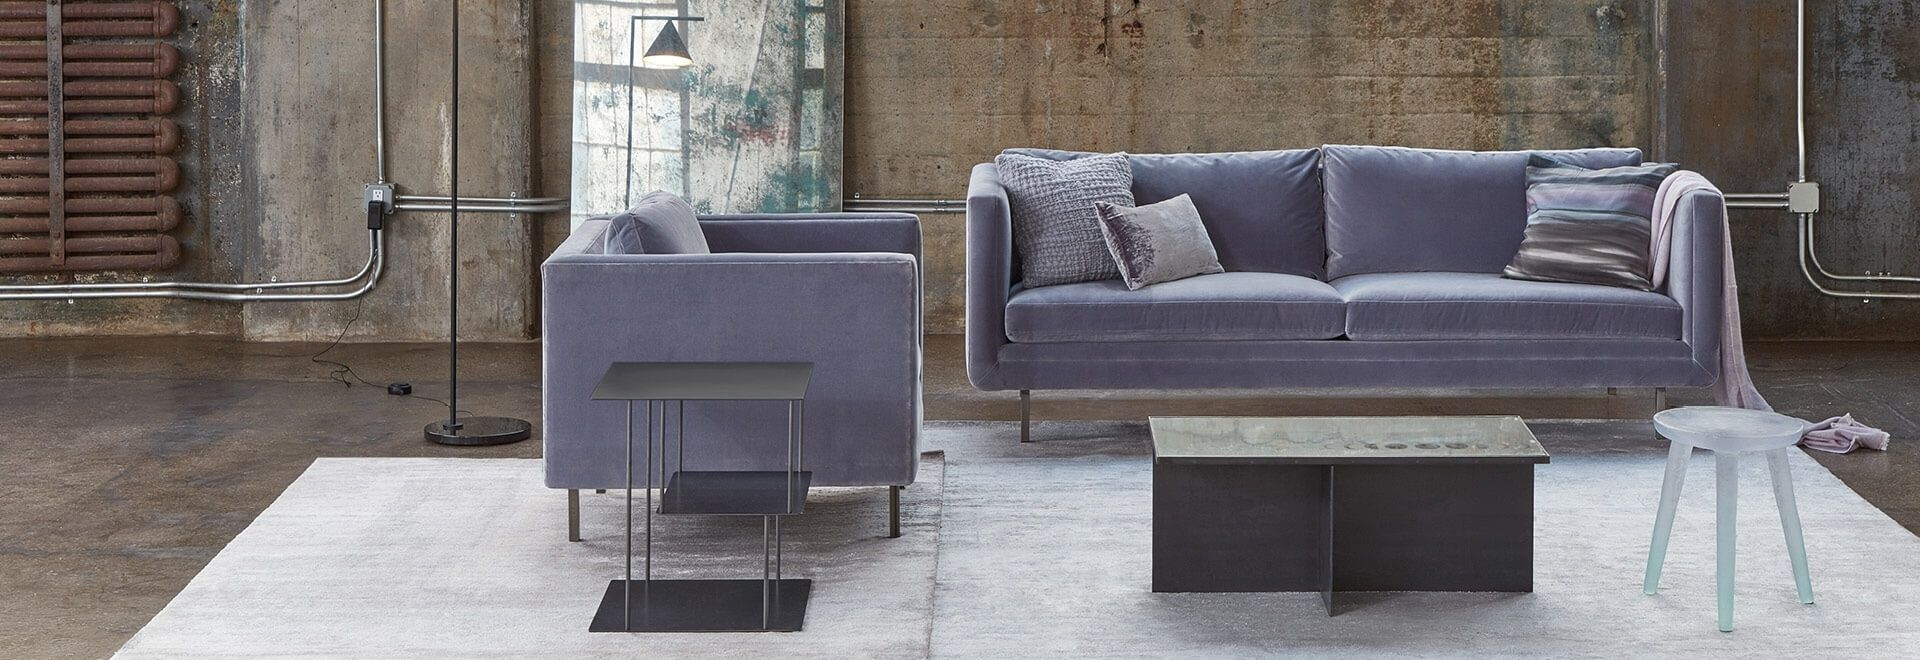 modern end tables and side home carpet coffee fall updates hero room essentials mixed material accent table violet armchair love seat sit atop white rug accented mirrored gunmetal